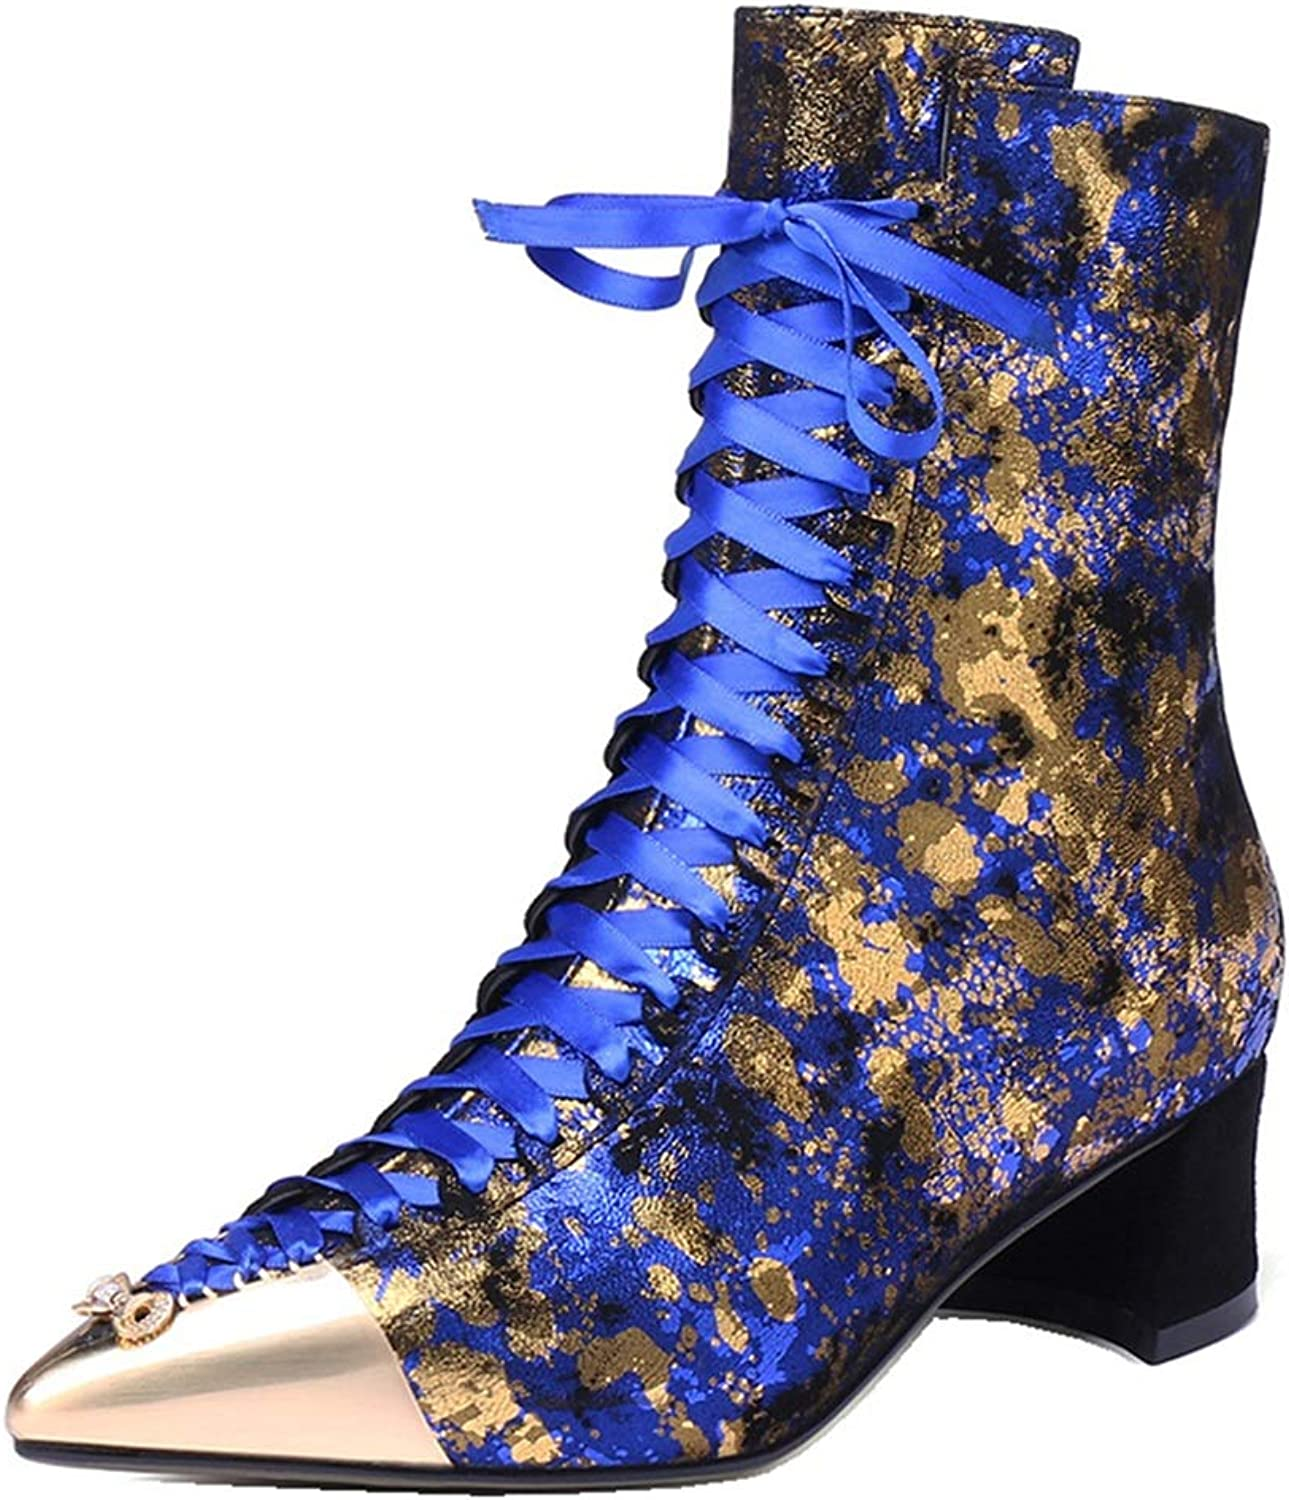 Women's Ankle Boots, Leather Bare Boots Fashion Metallic Toe Floral Fringe Boots Pointed Toe Zipper Novelty Boots (color   A, Size   35)